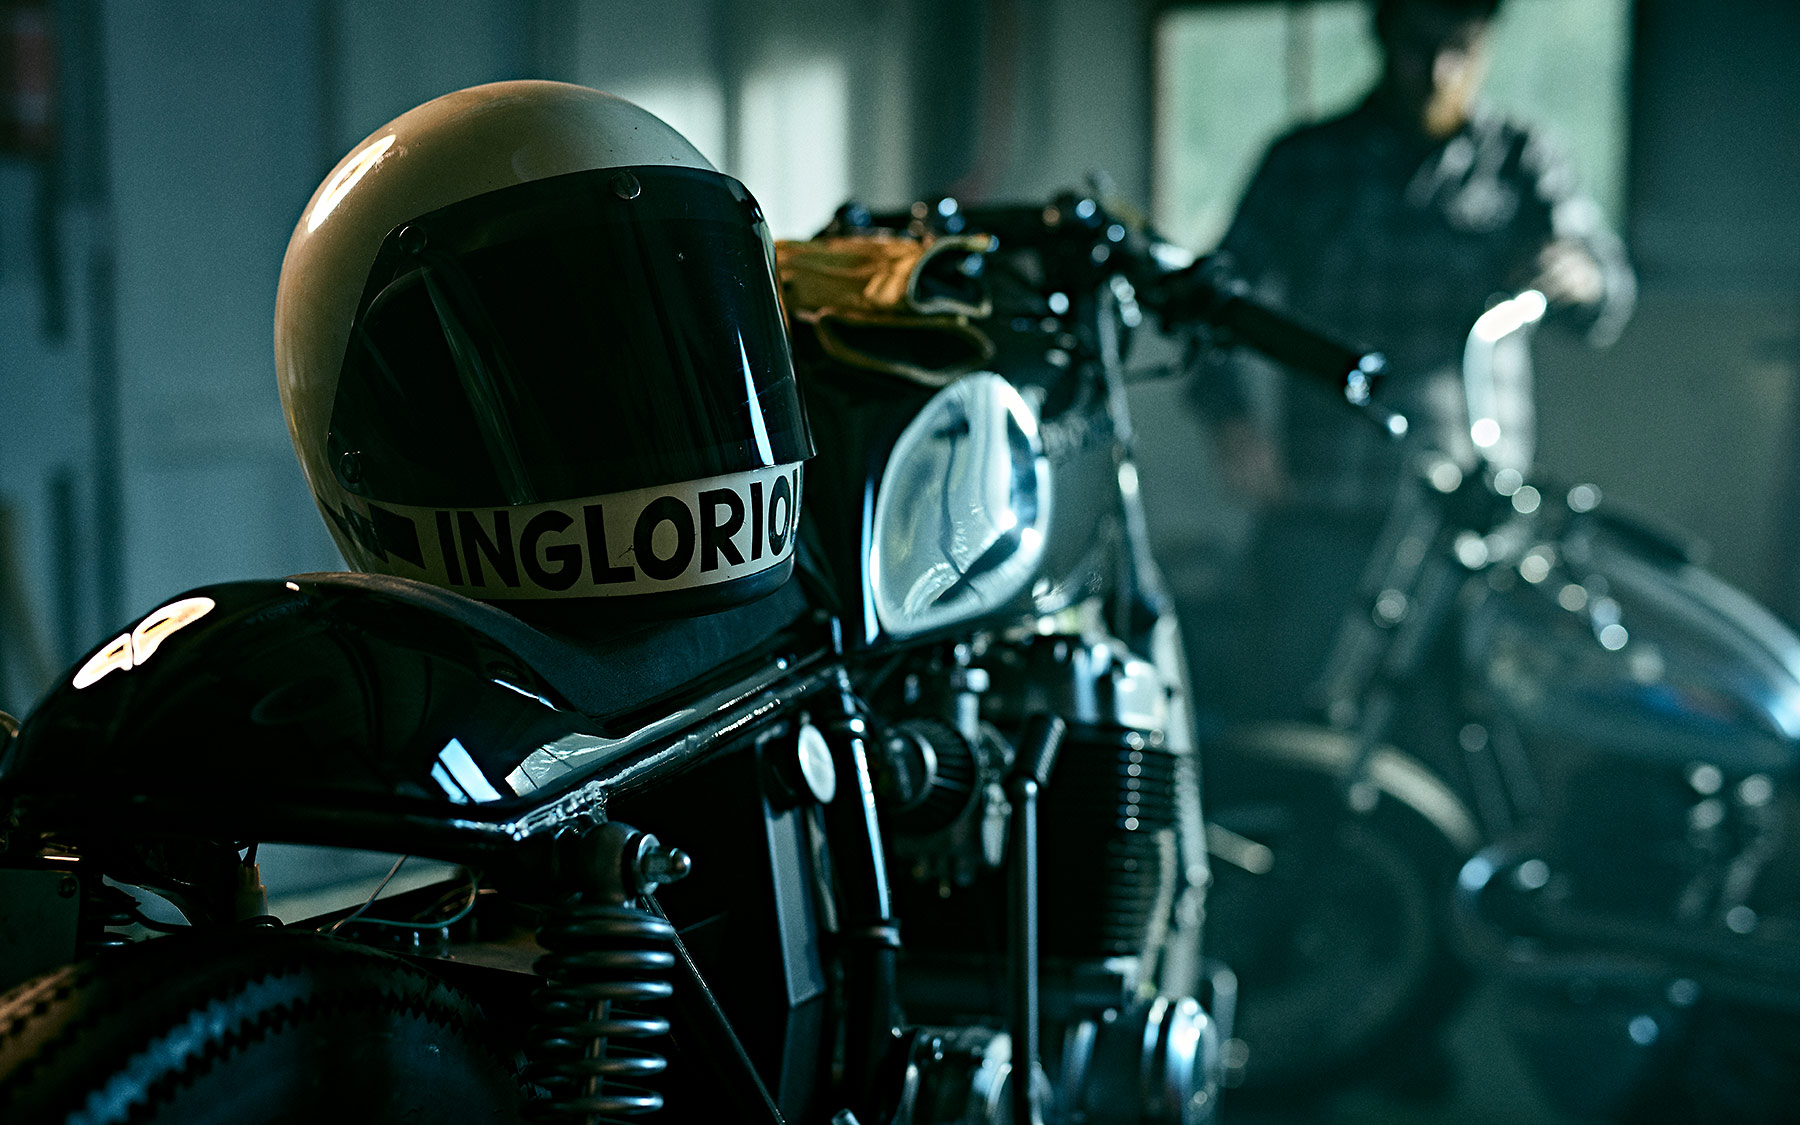 Inside the Inglorious Motorcycles workshop